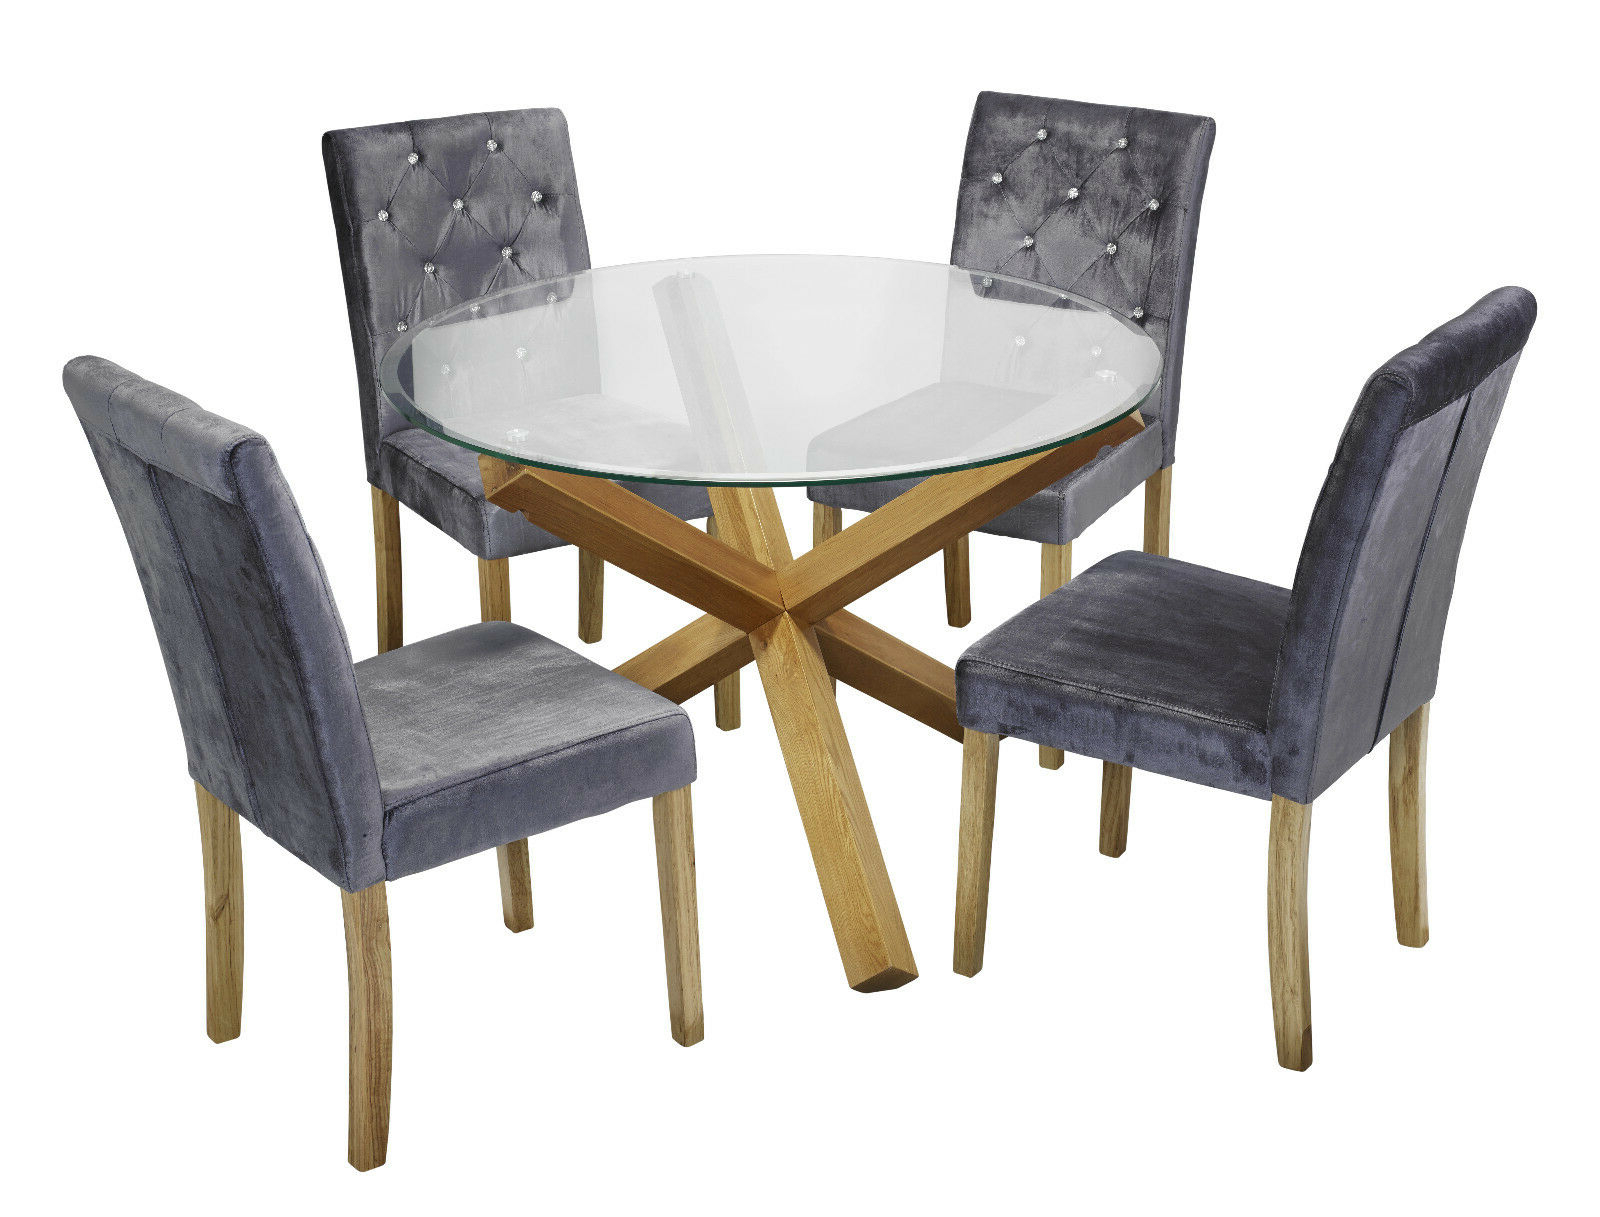 Round Glass Top Dining Tables Inside Preferred Details About Trend Solid Oak Round Glass Top Dining Table & 4 Amour Silver Fabric Chair Set (View 13 of 30)